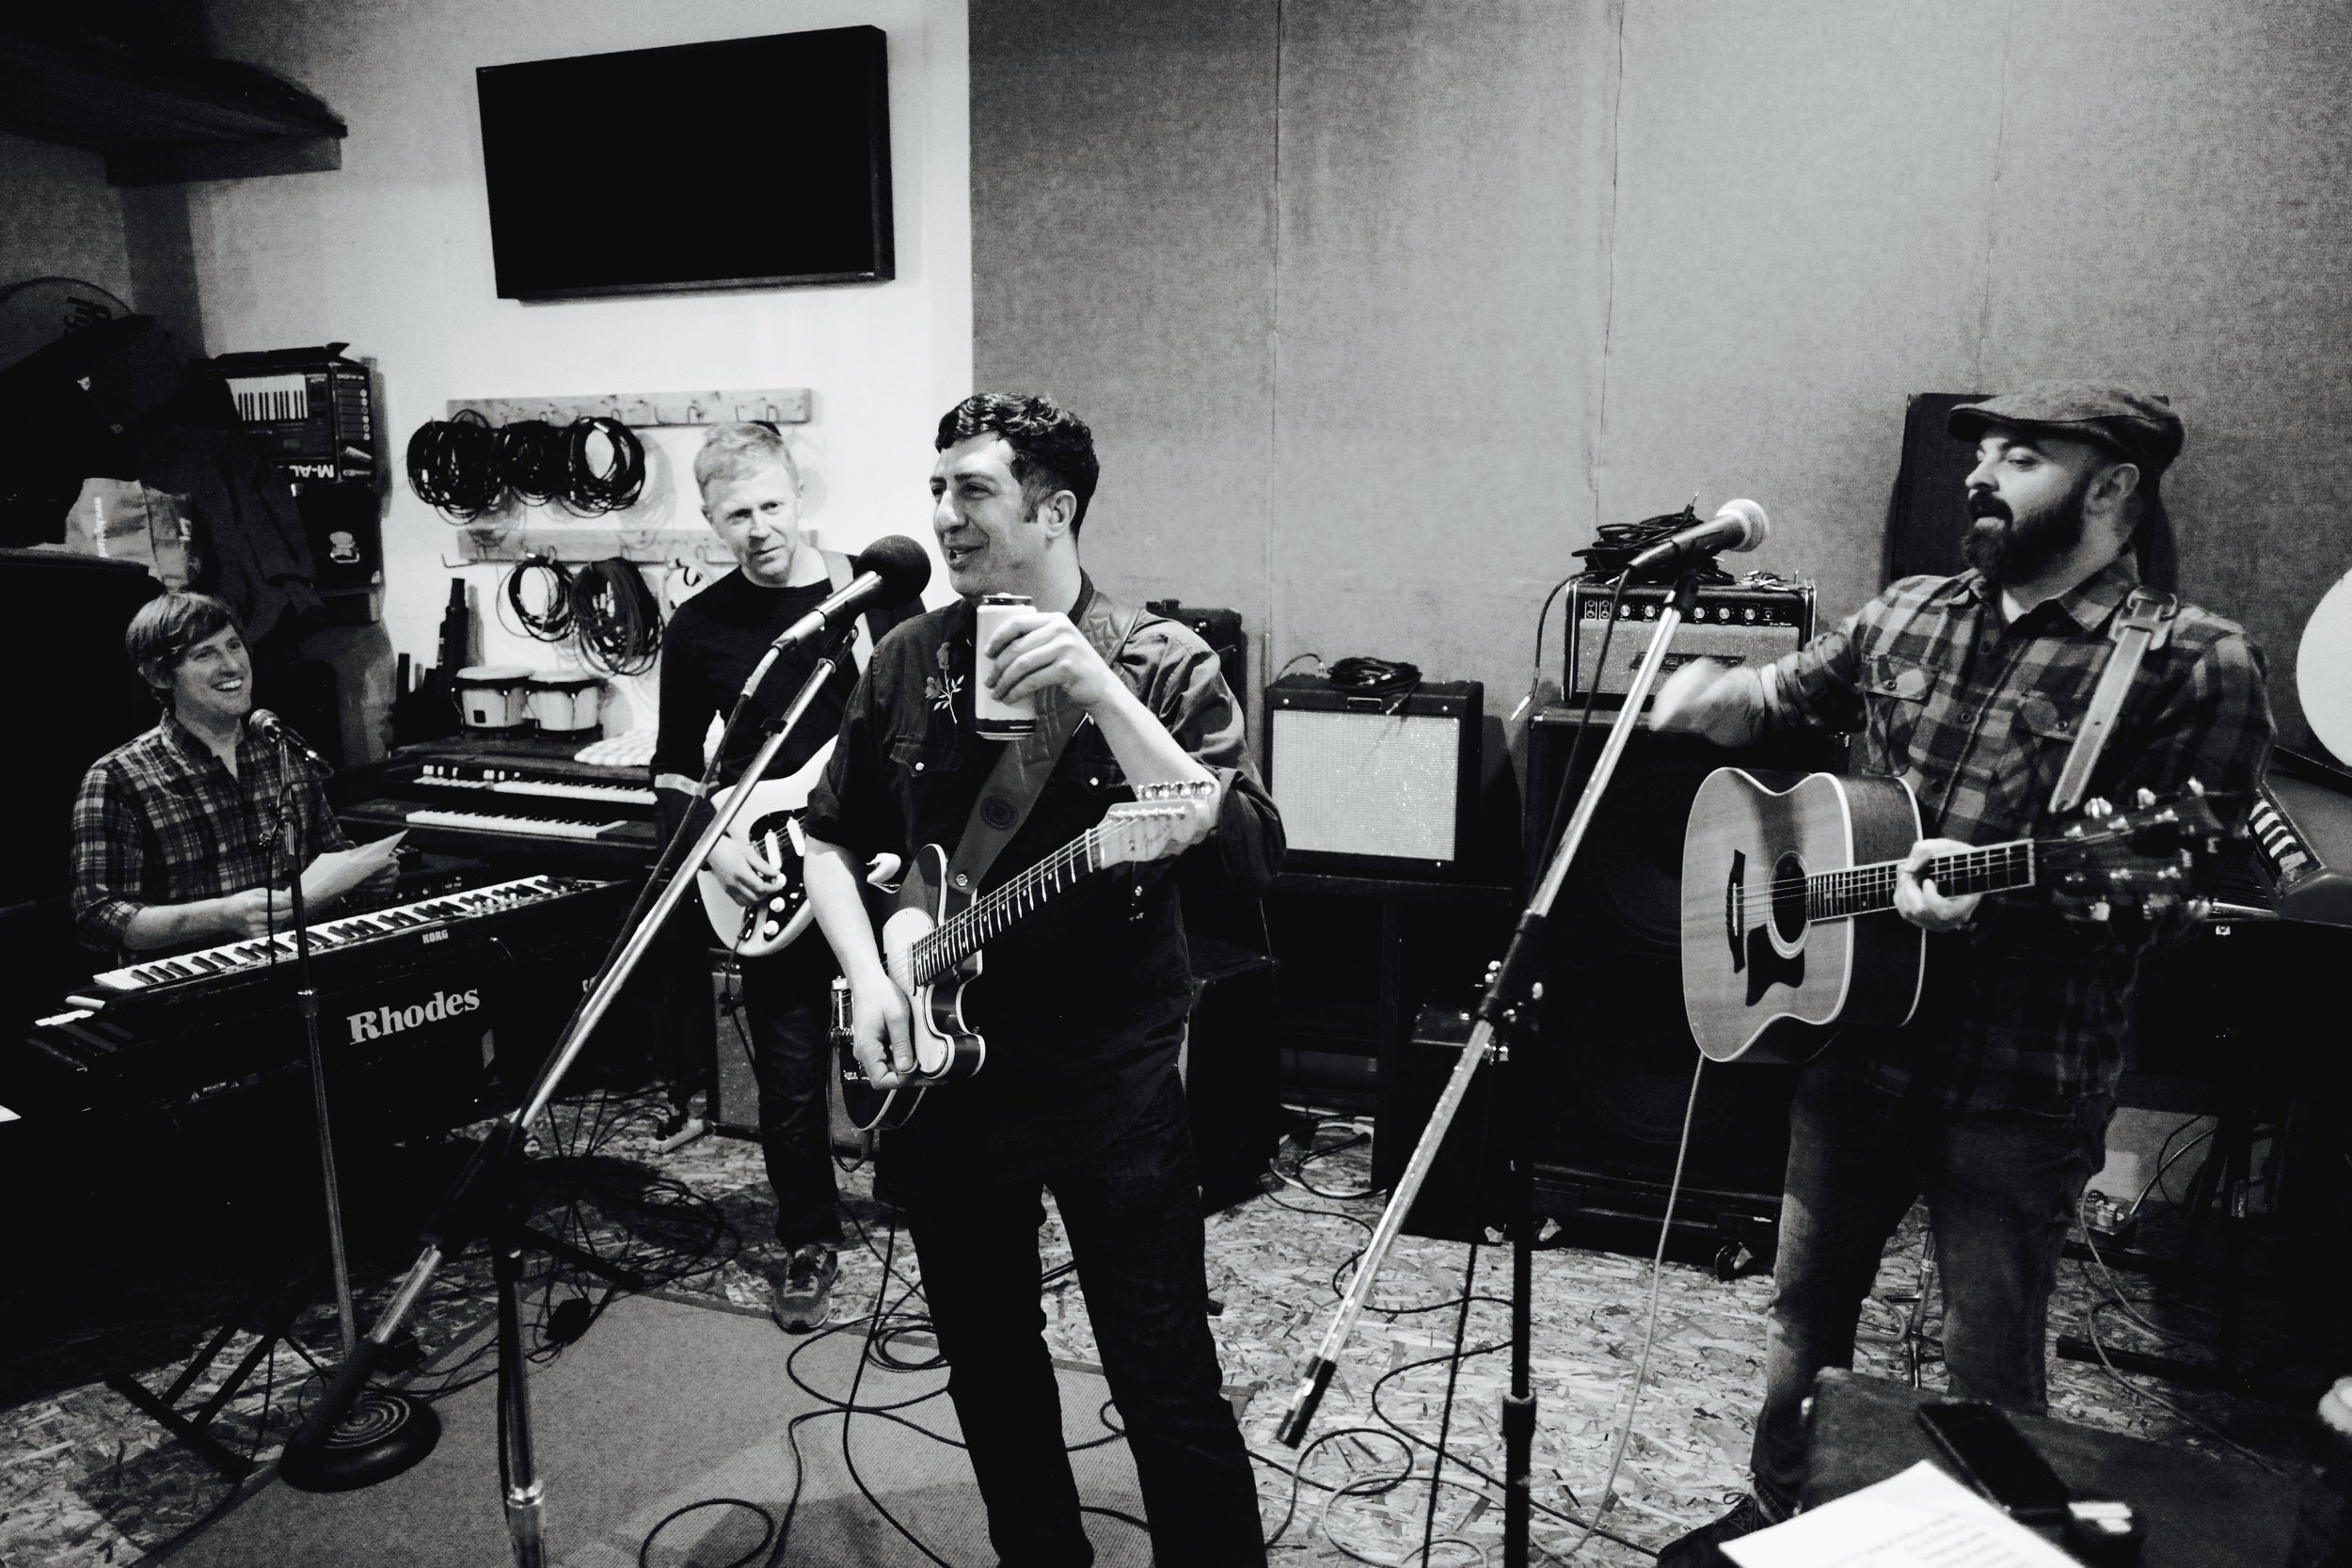 Rehearsals at South River Sound